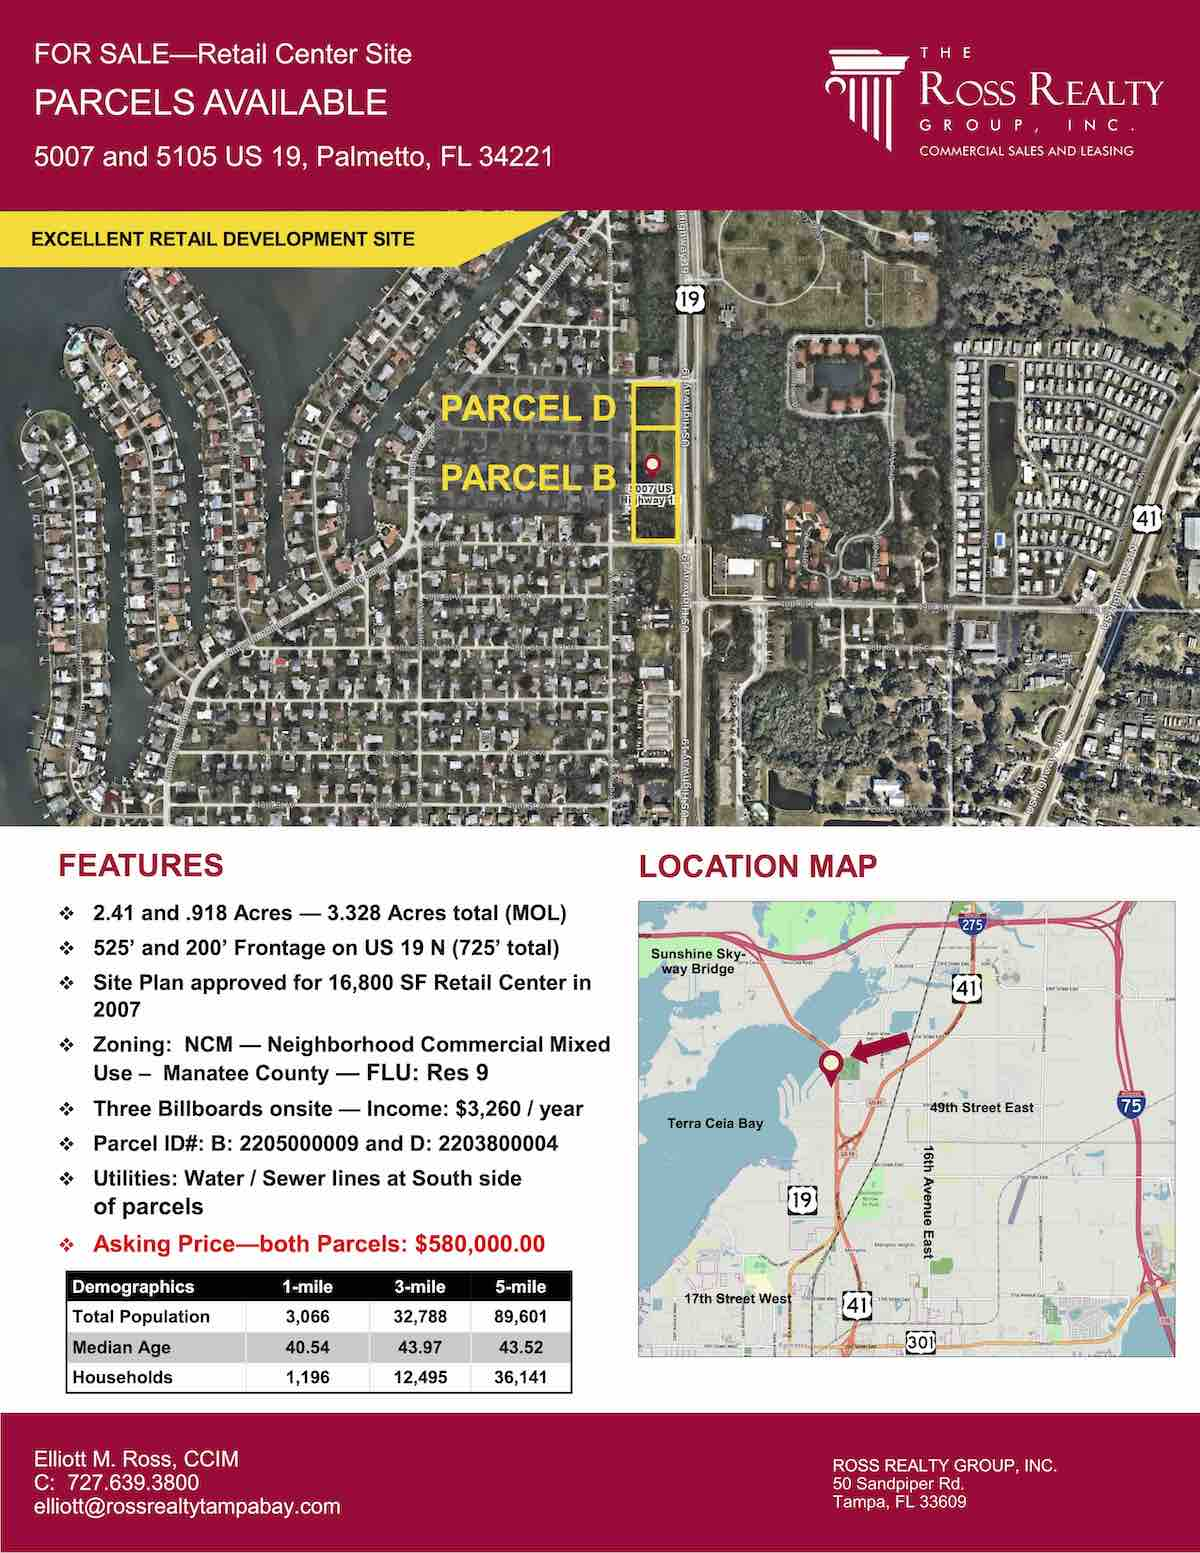 Tampa Commercial Real Estate - FOR SALE - Retail Center Site - Parcels Available - 5007 and 5105 US 19, Palmetto, FL 34221 P1